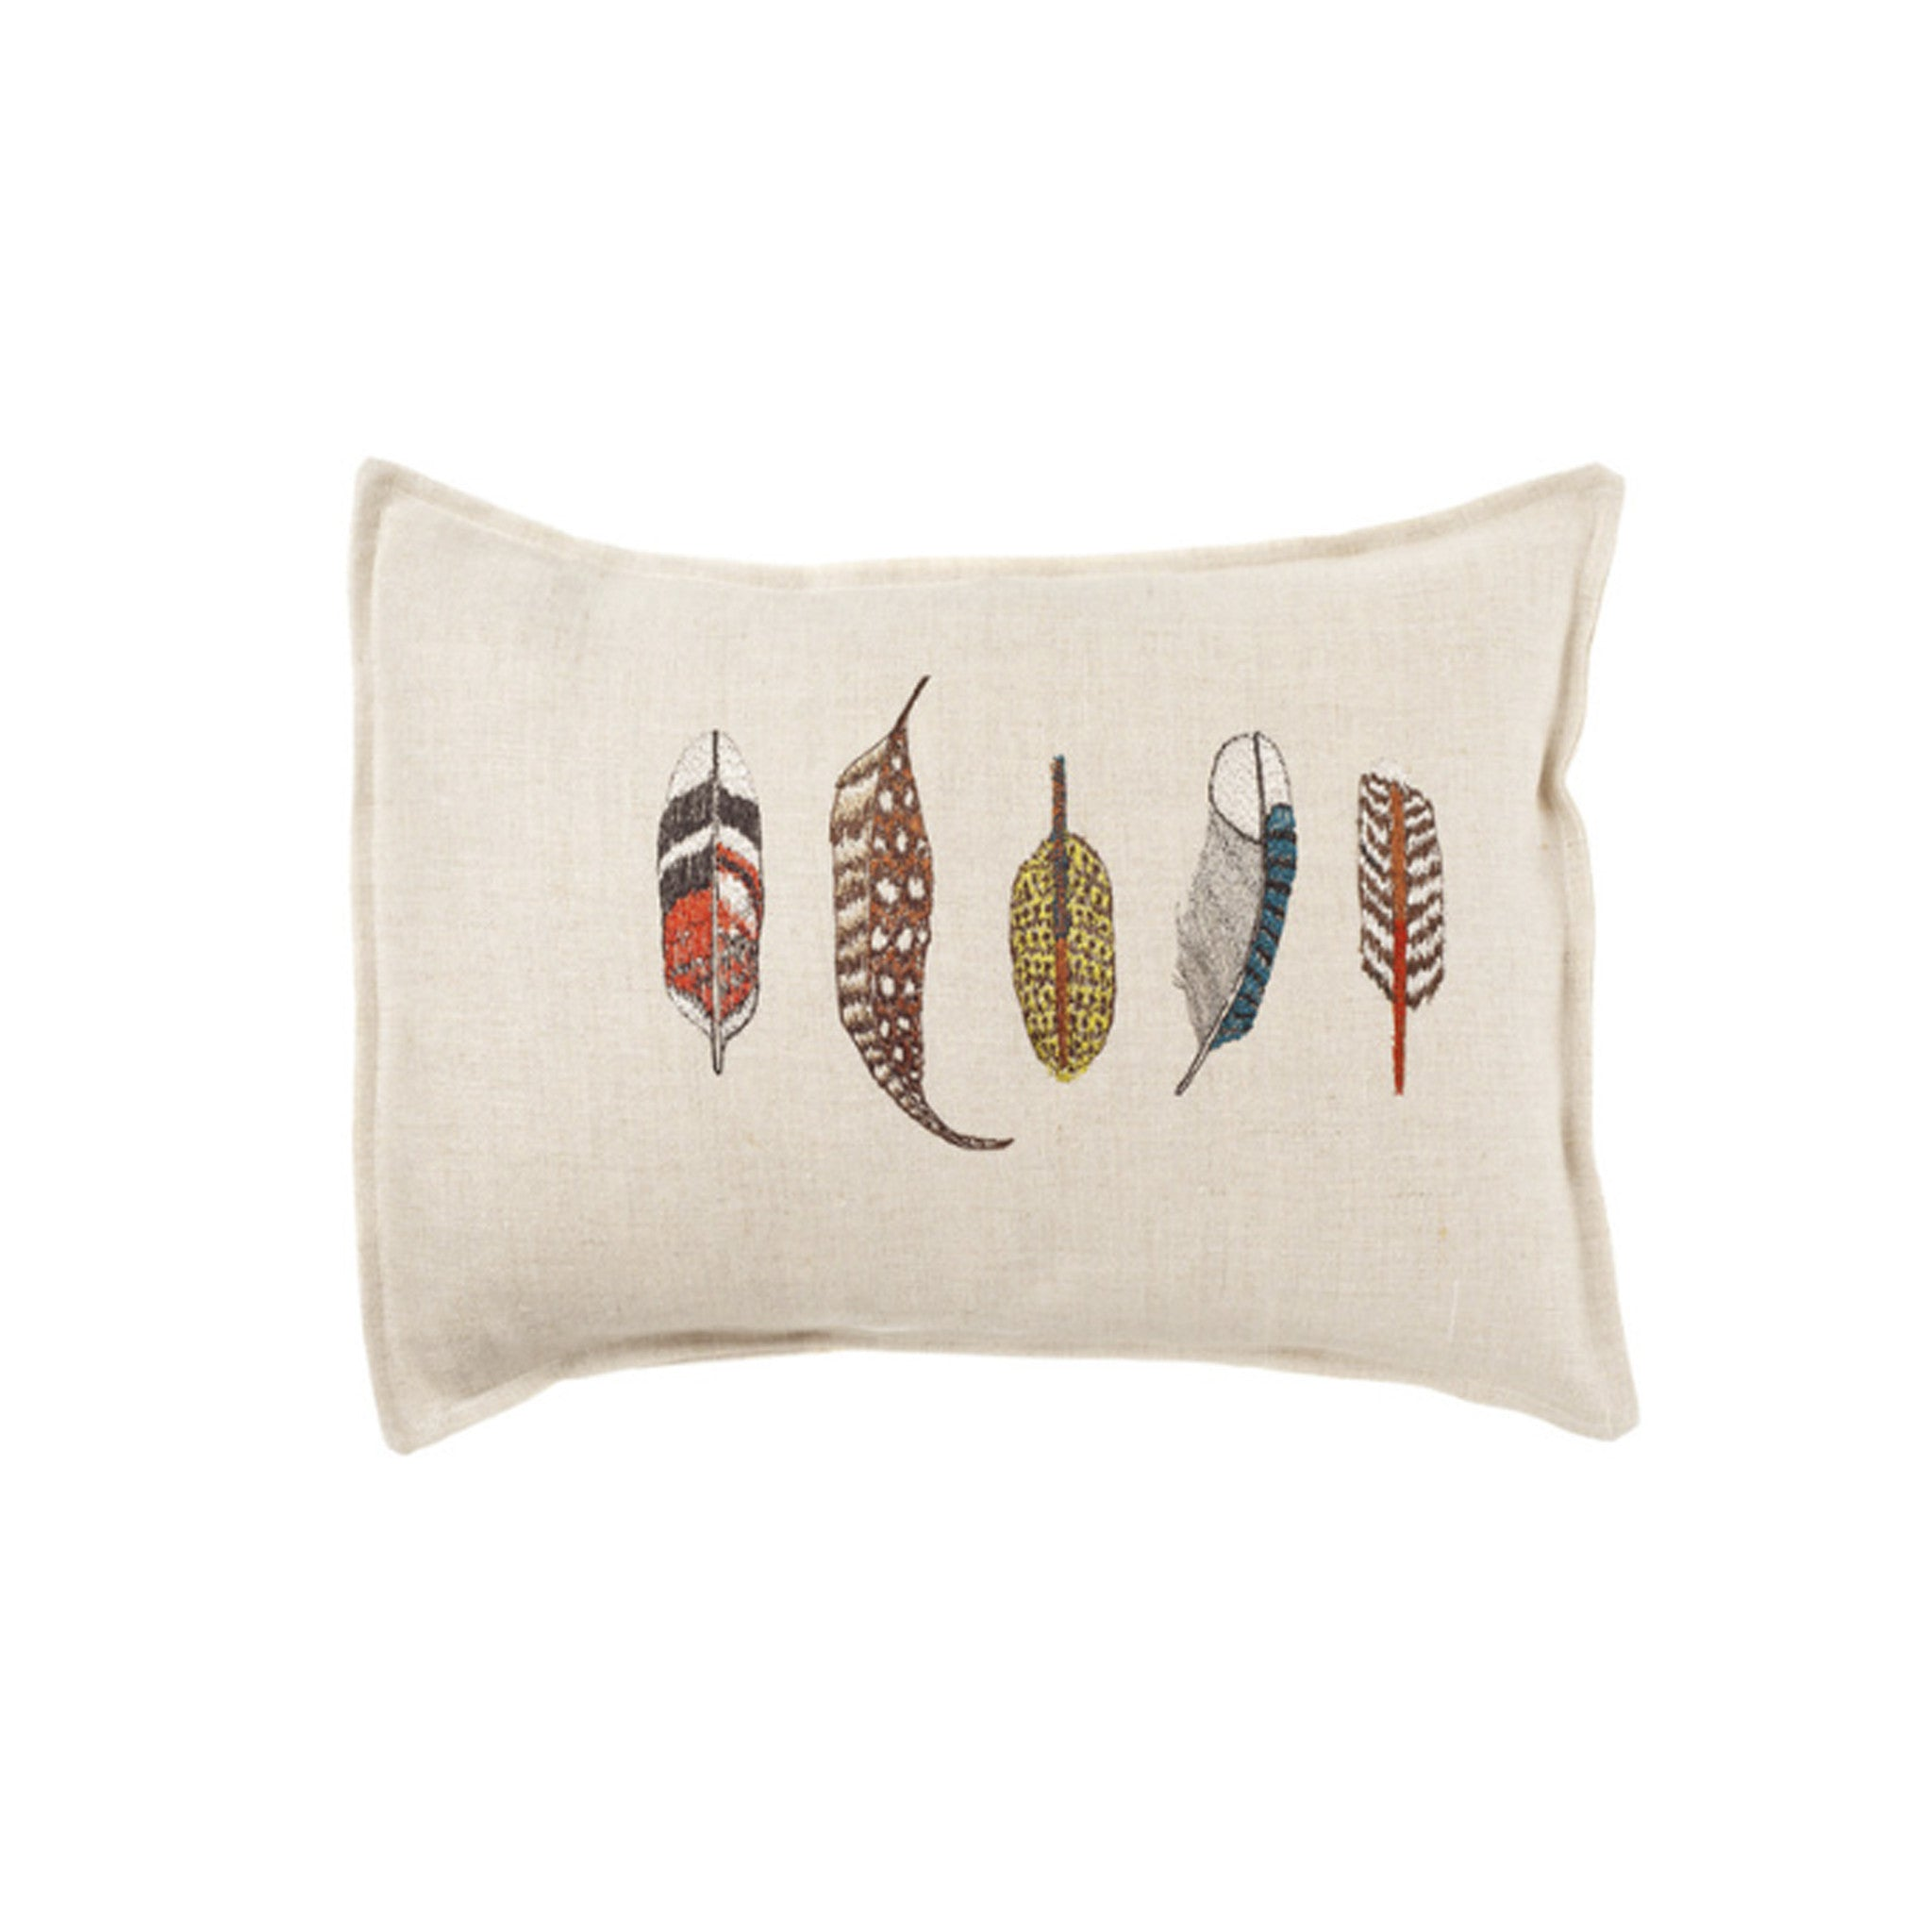 Coral and Tusk : Small Feathers Pillow